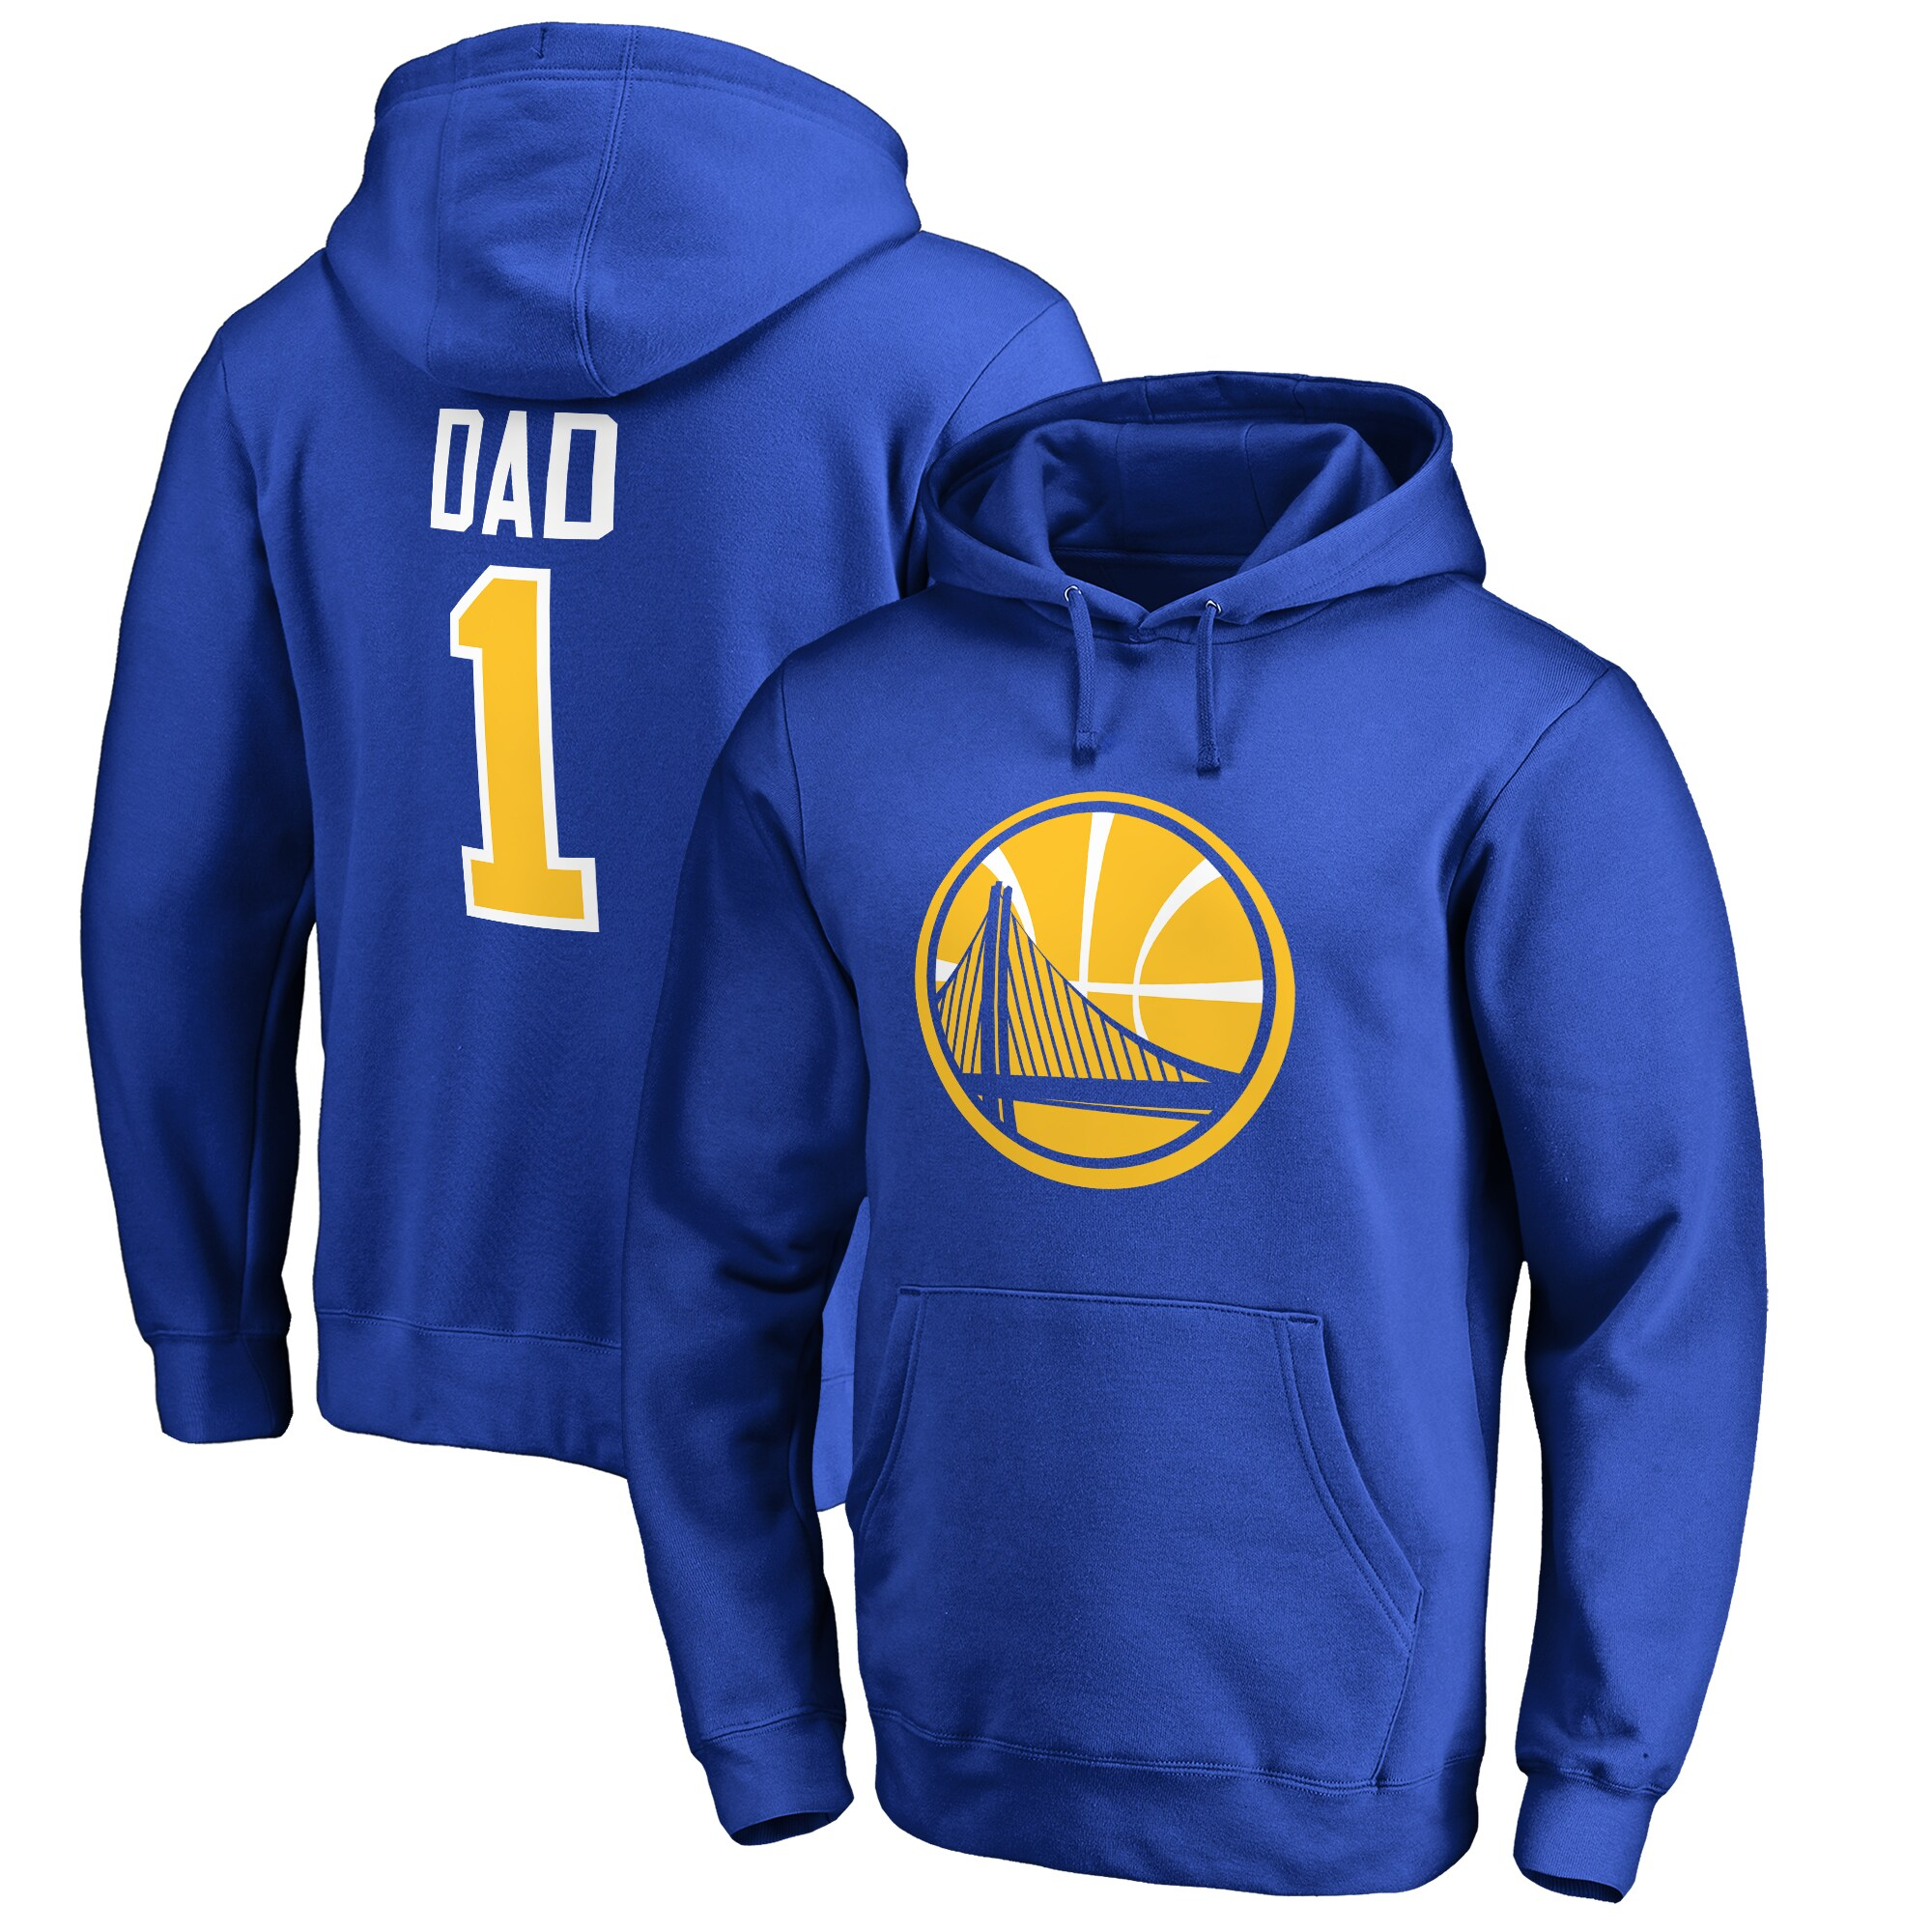 Golden State Warriors Fanatics Branded Big & Tall #1 Dad Pullover Hoodie - Royal